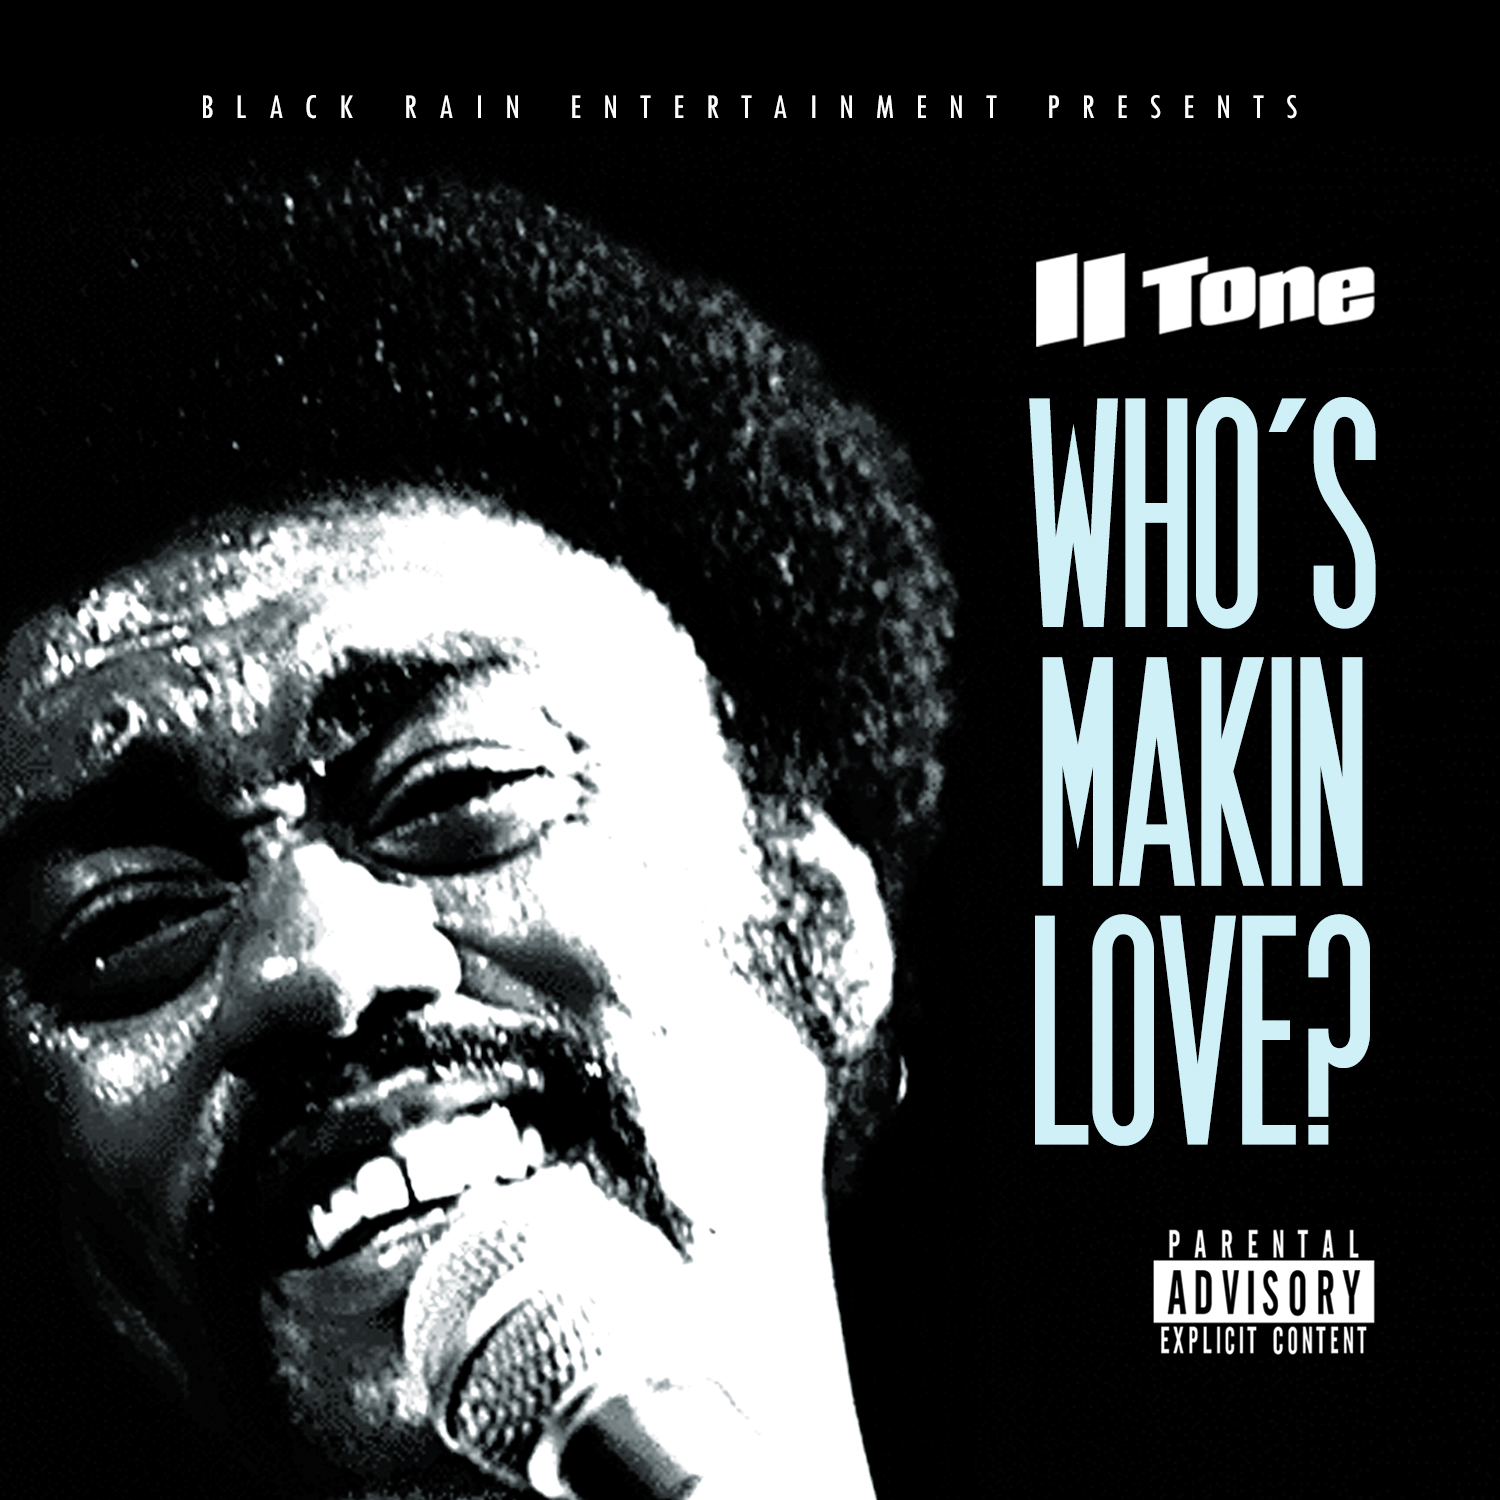 II Tone – Who's Makin Love?